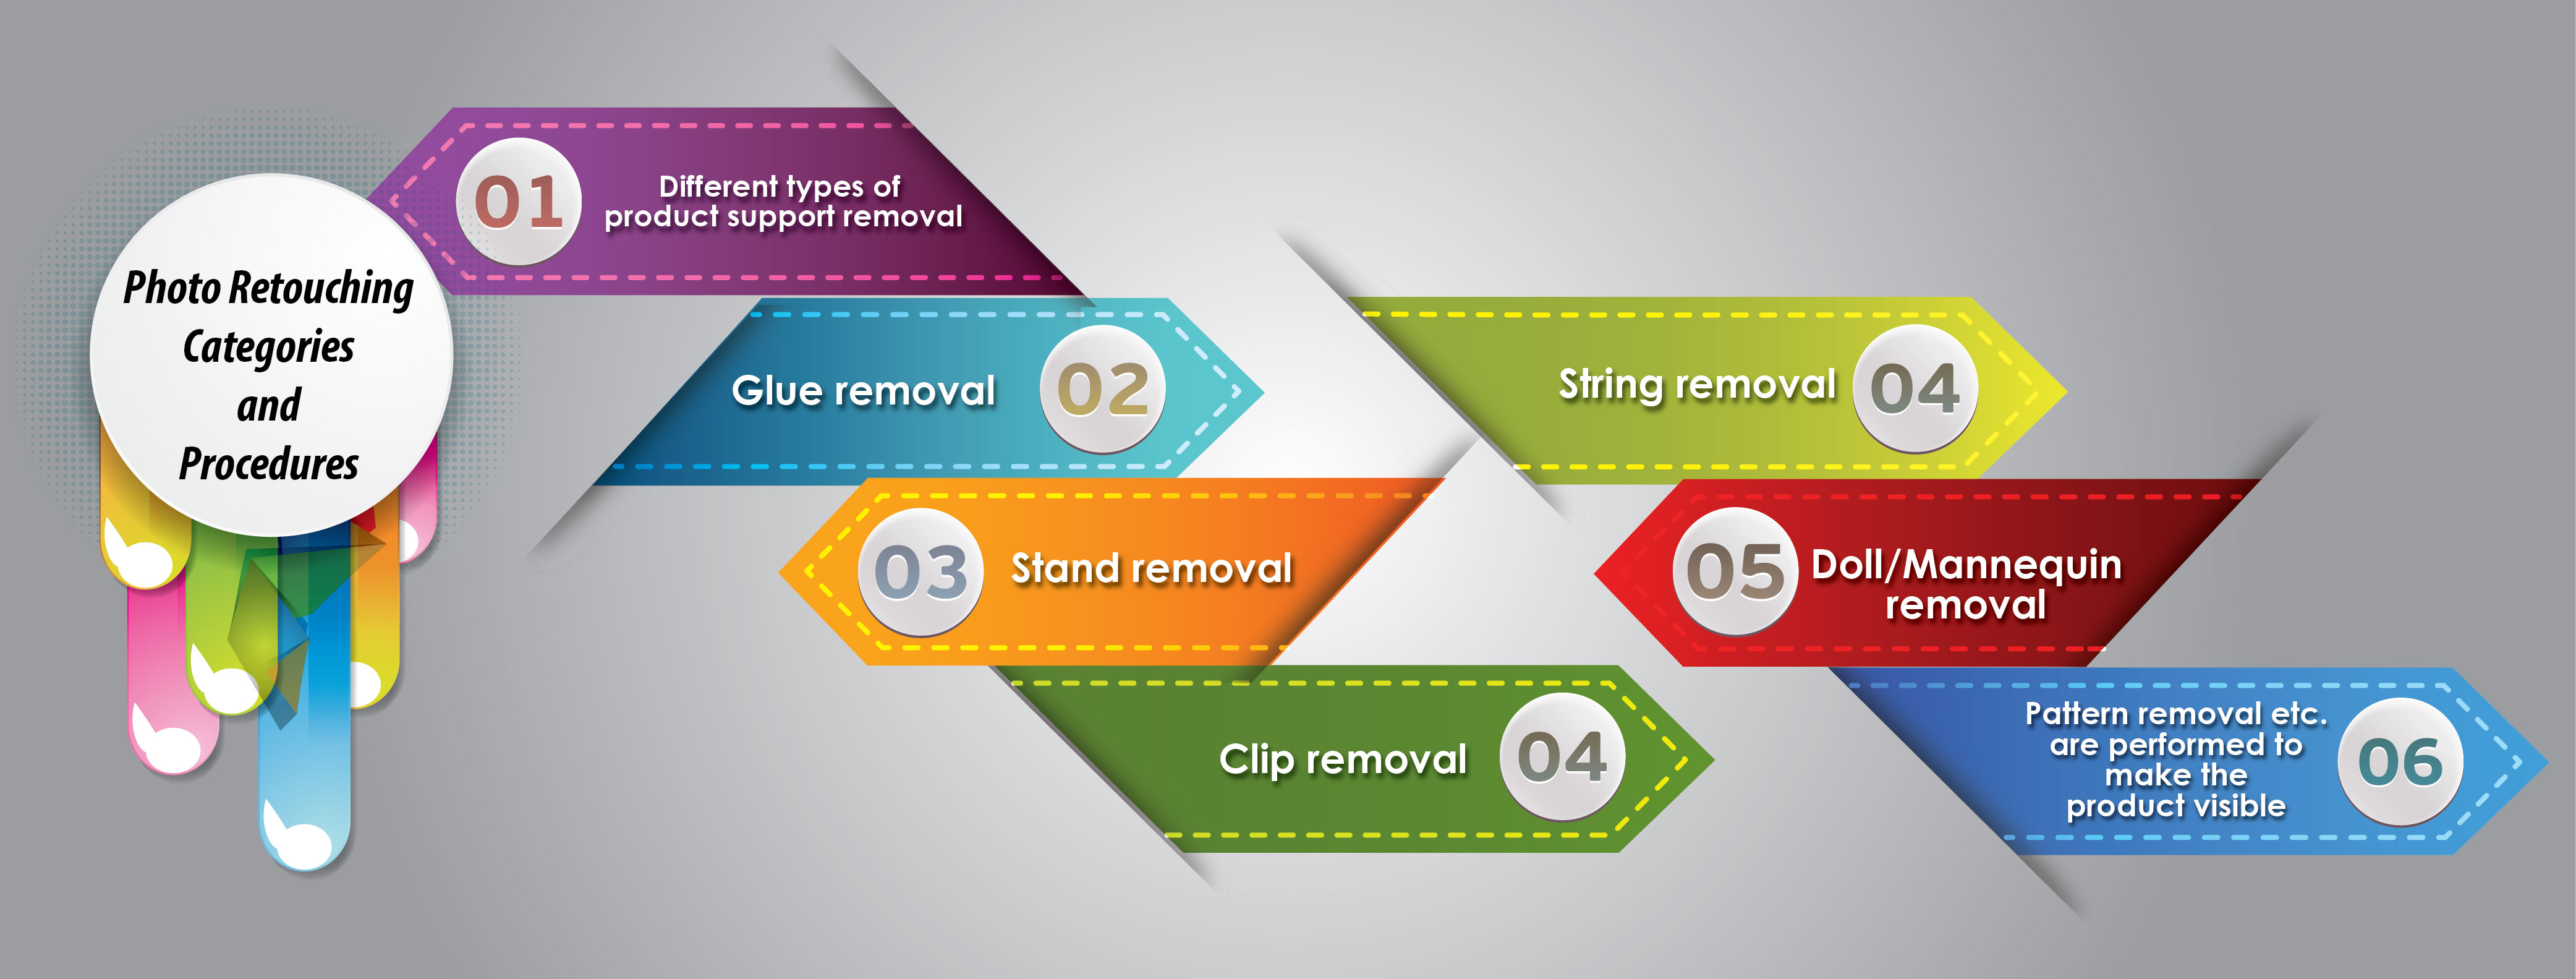 Photo Retouching Categories and Procedures